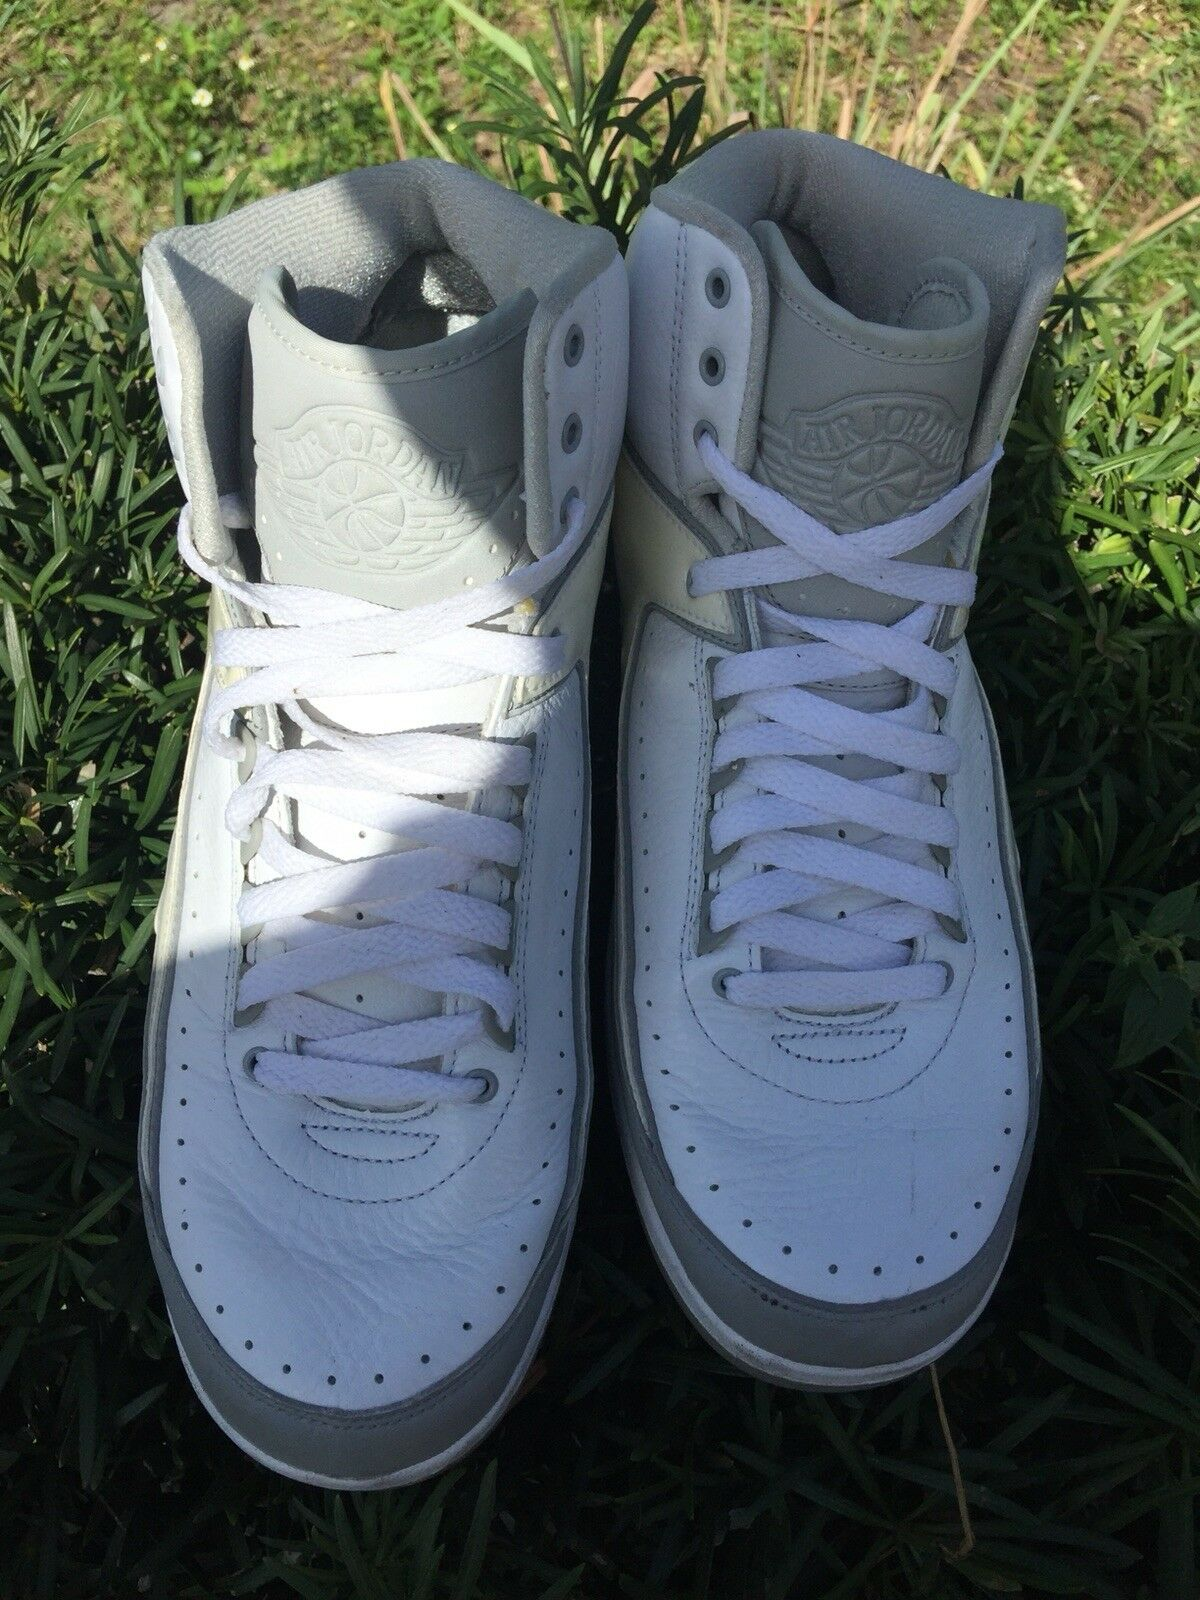 air jordan retro 2 all white size 11 Cheap and beautiful fashion